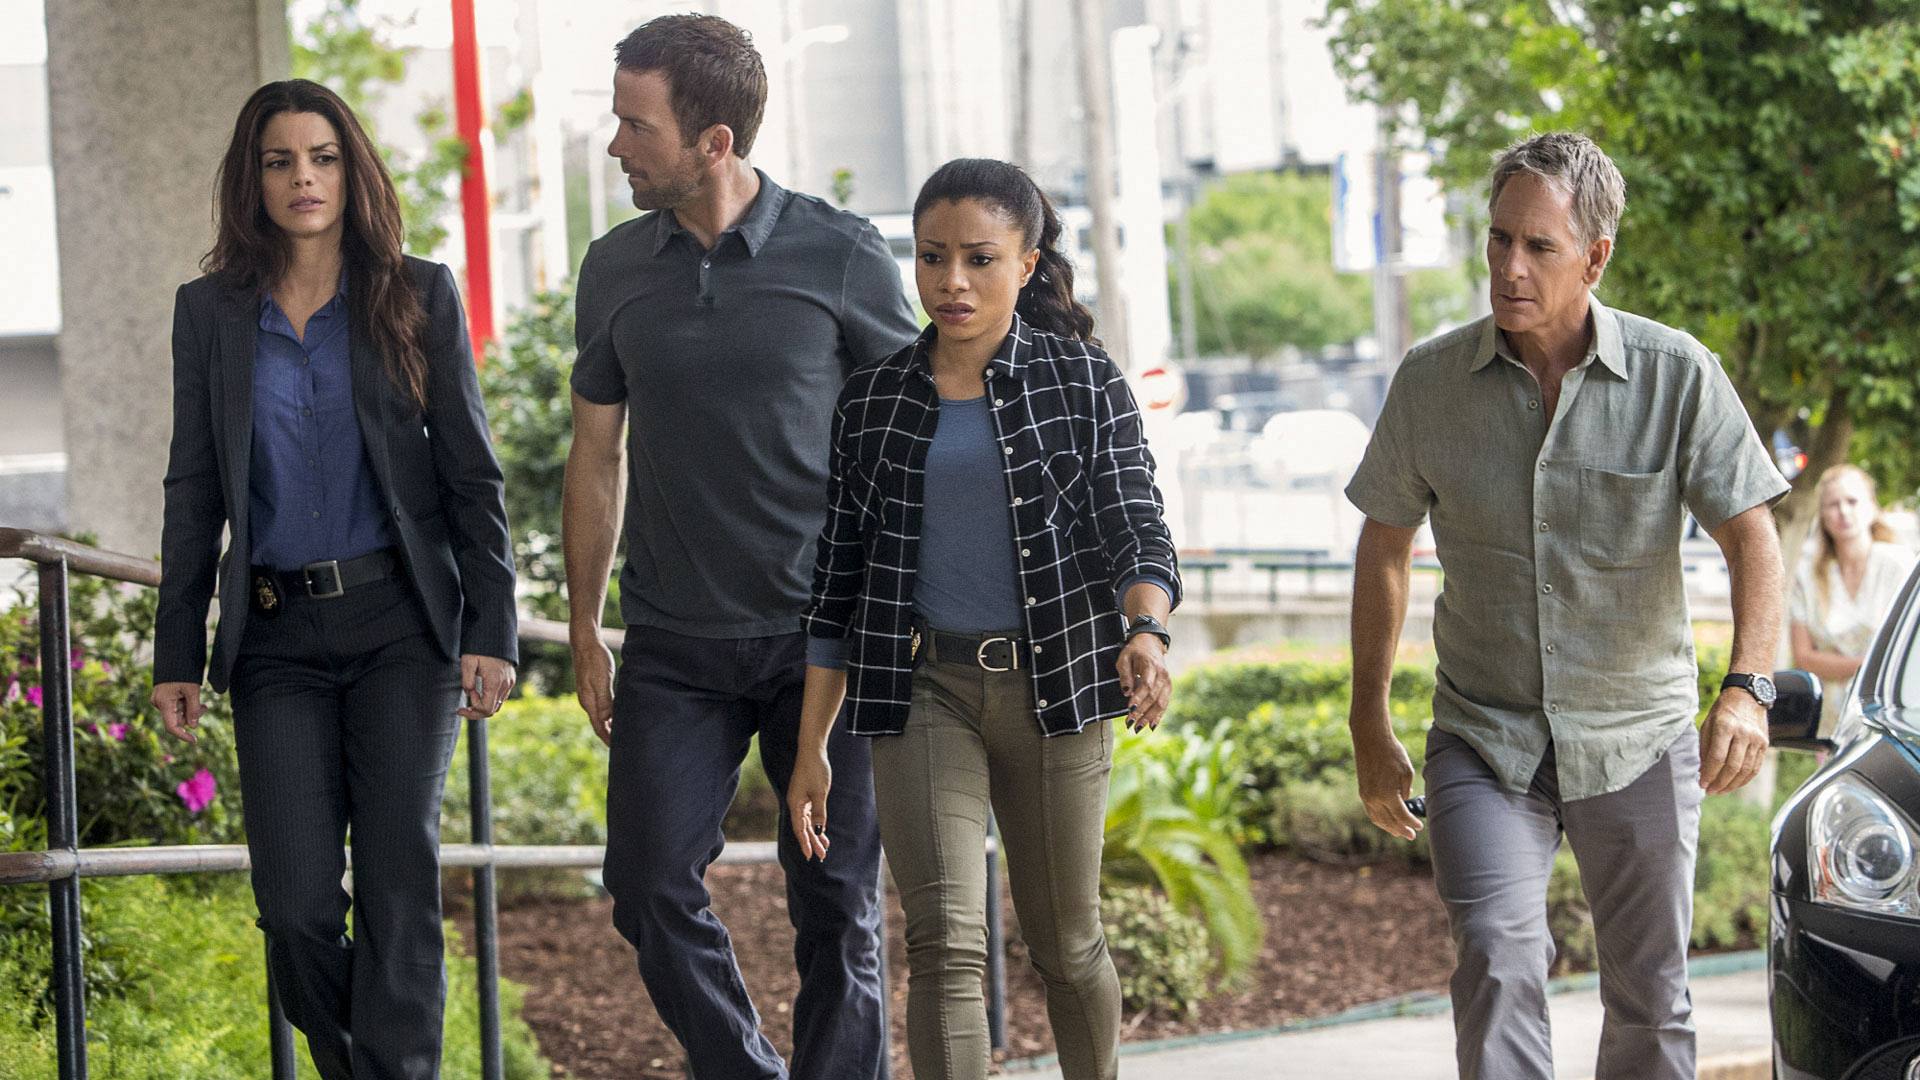 The team will track a sniper when NCIS: New Orleans premieres this fall.